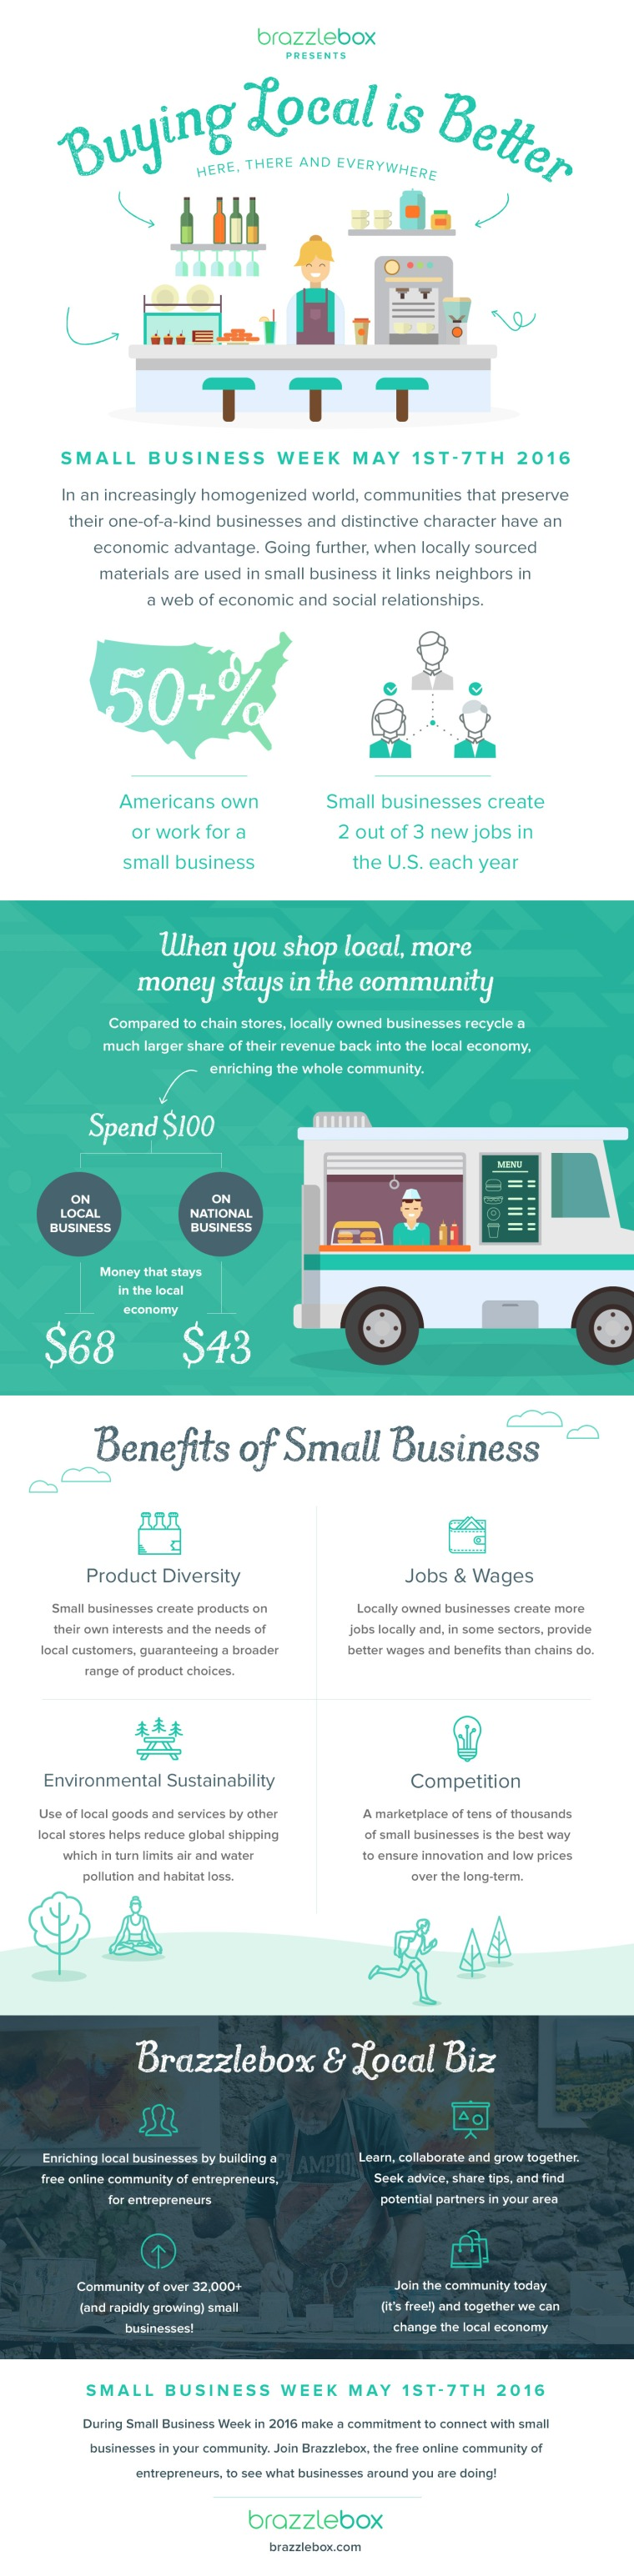 Great Infographic provided by Brazzlebox, a free community built by and for small business owners.